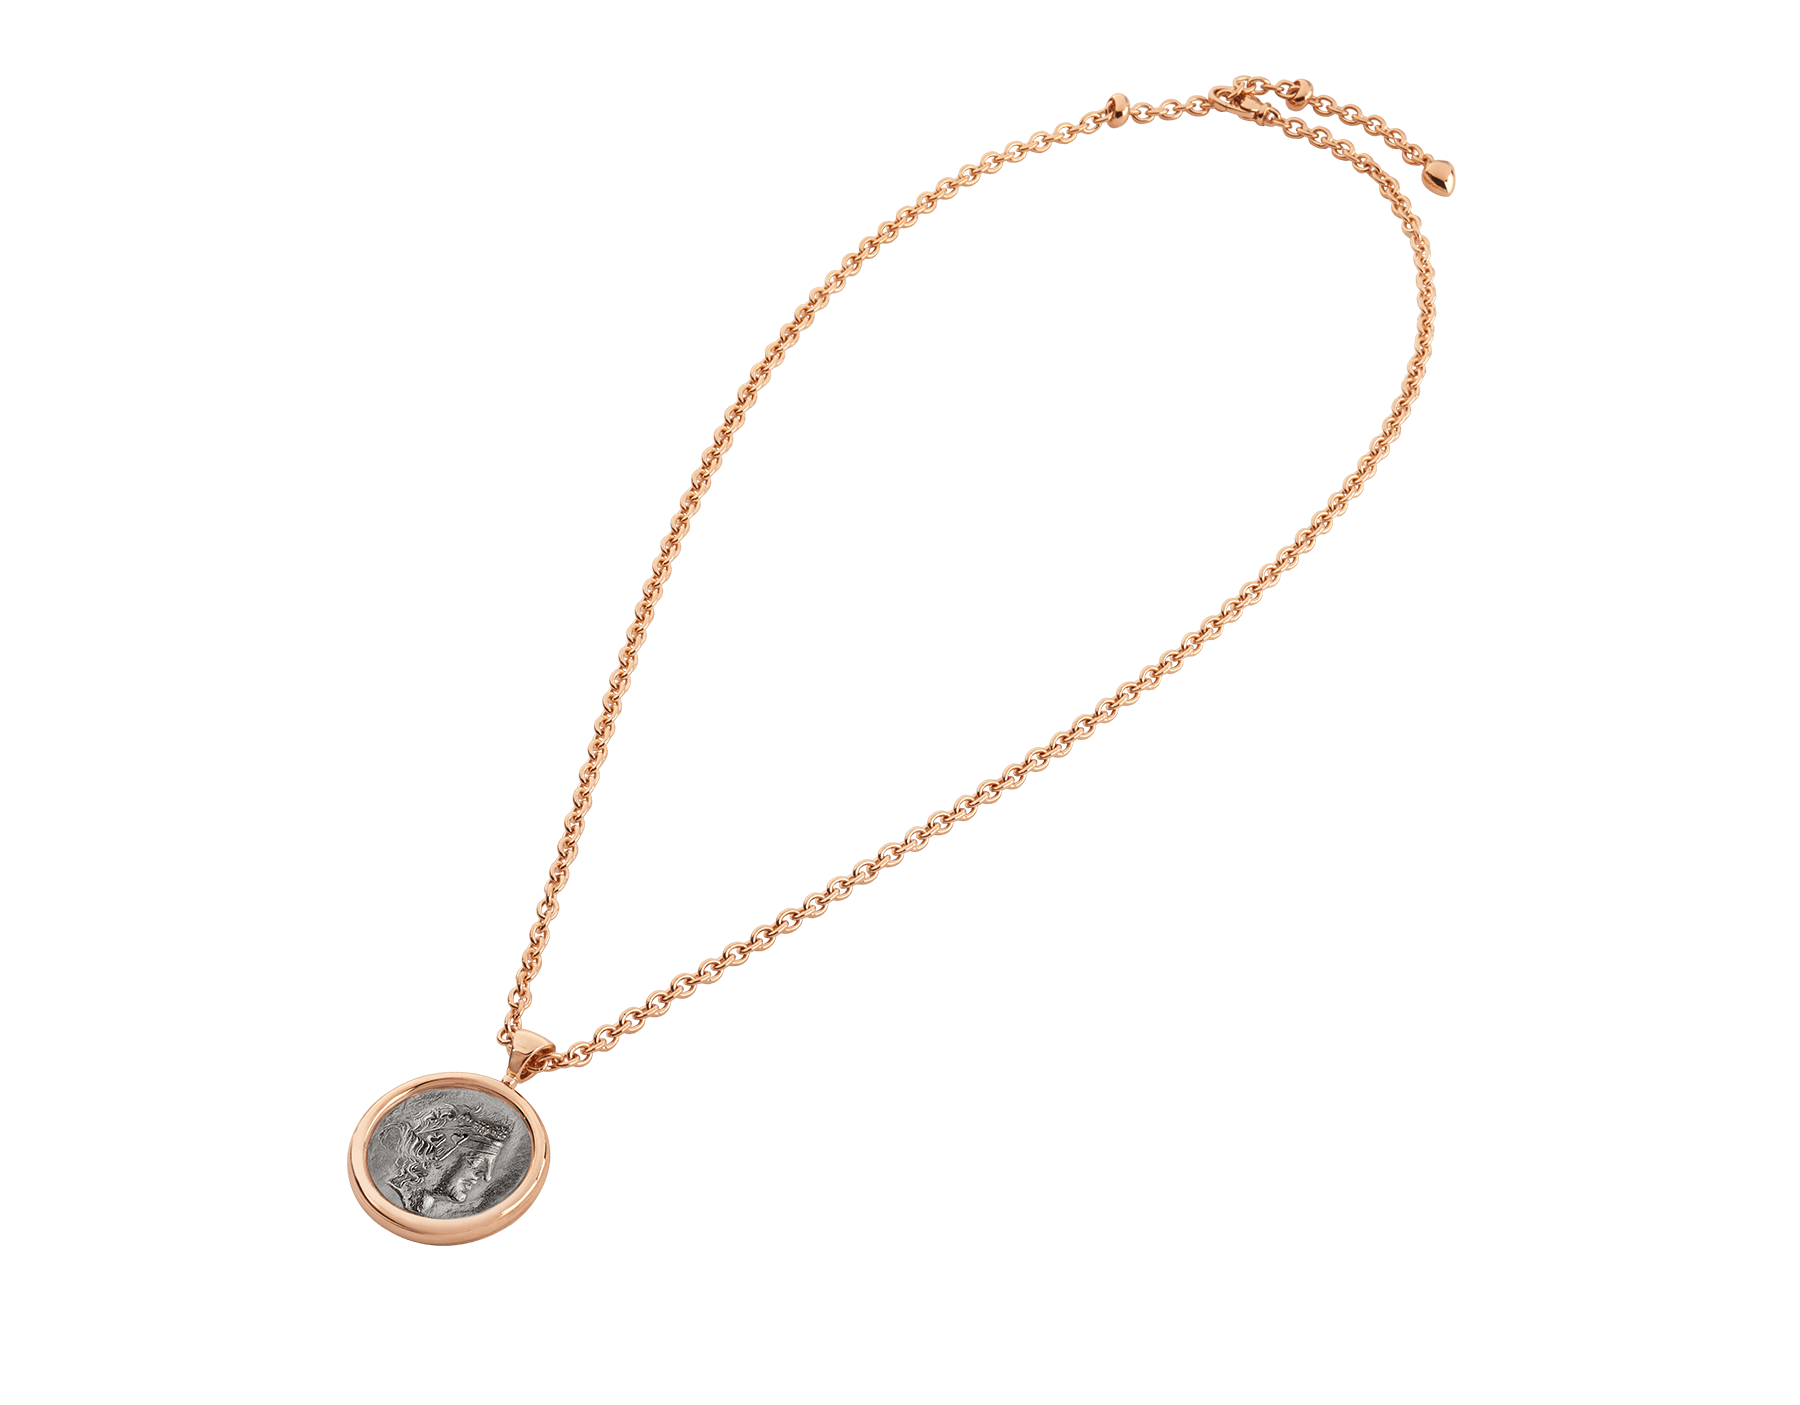 Monete necklace with 18 kt rose gold chain and 18 kt rose gold pendant set with an antique coin 347707 image 2